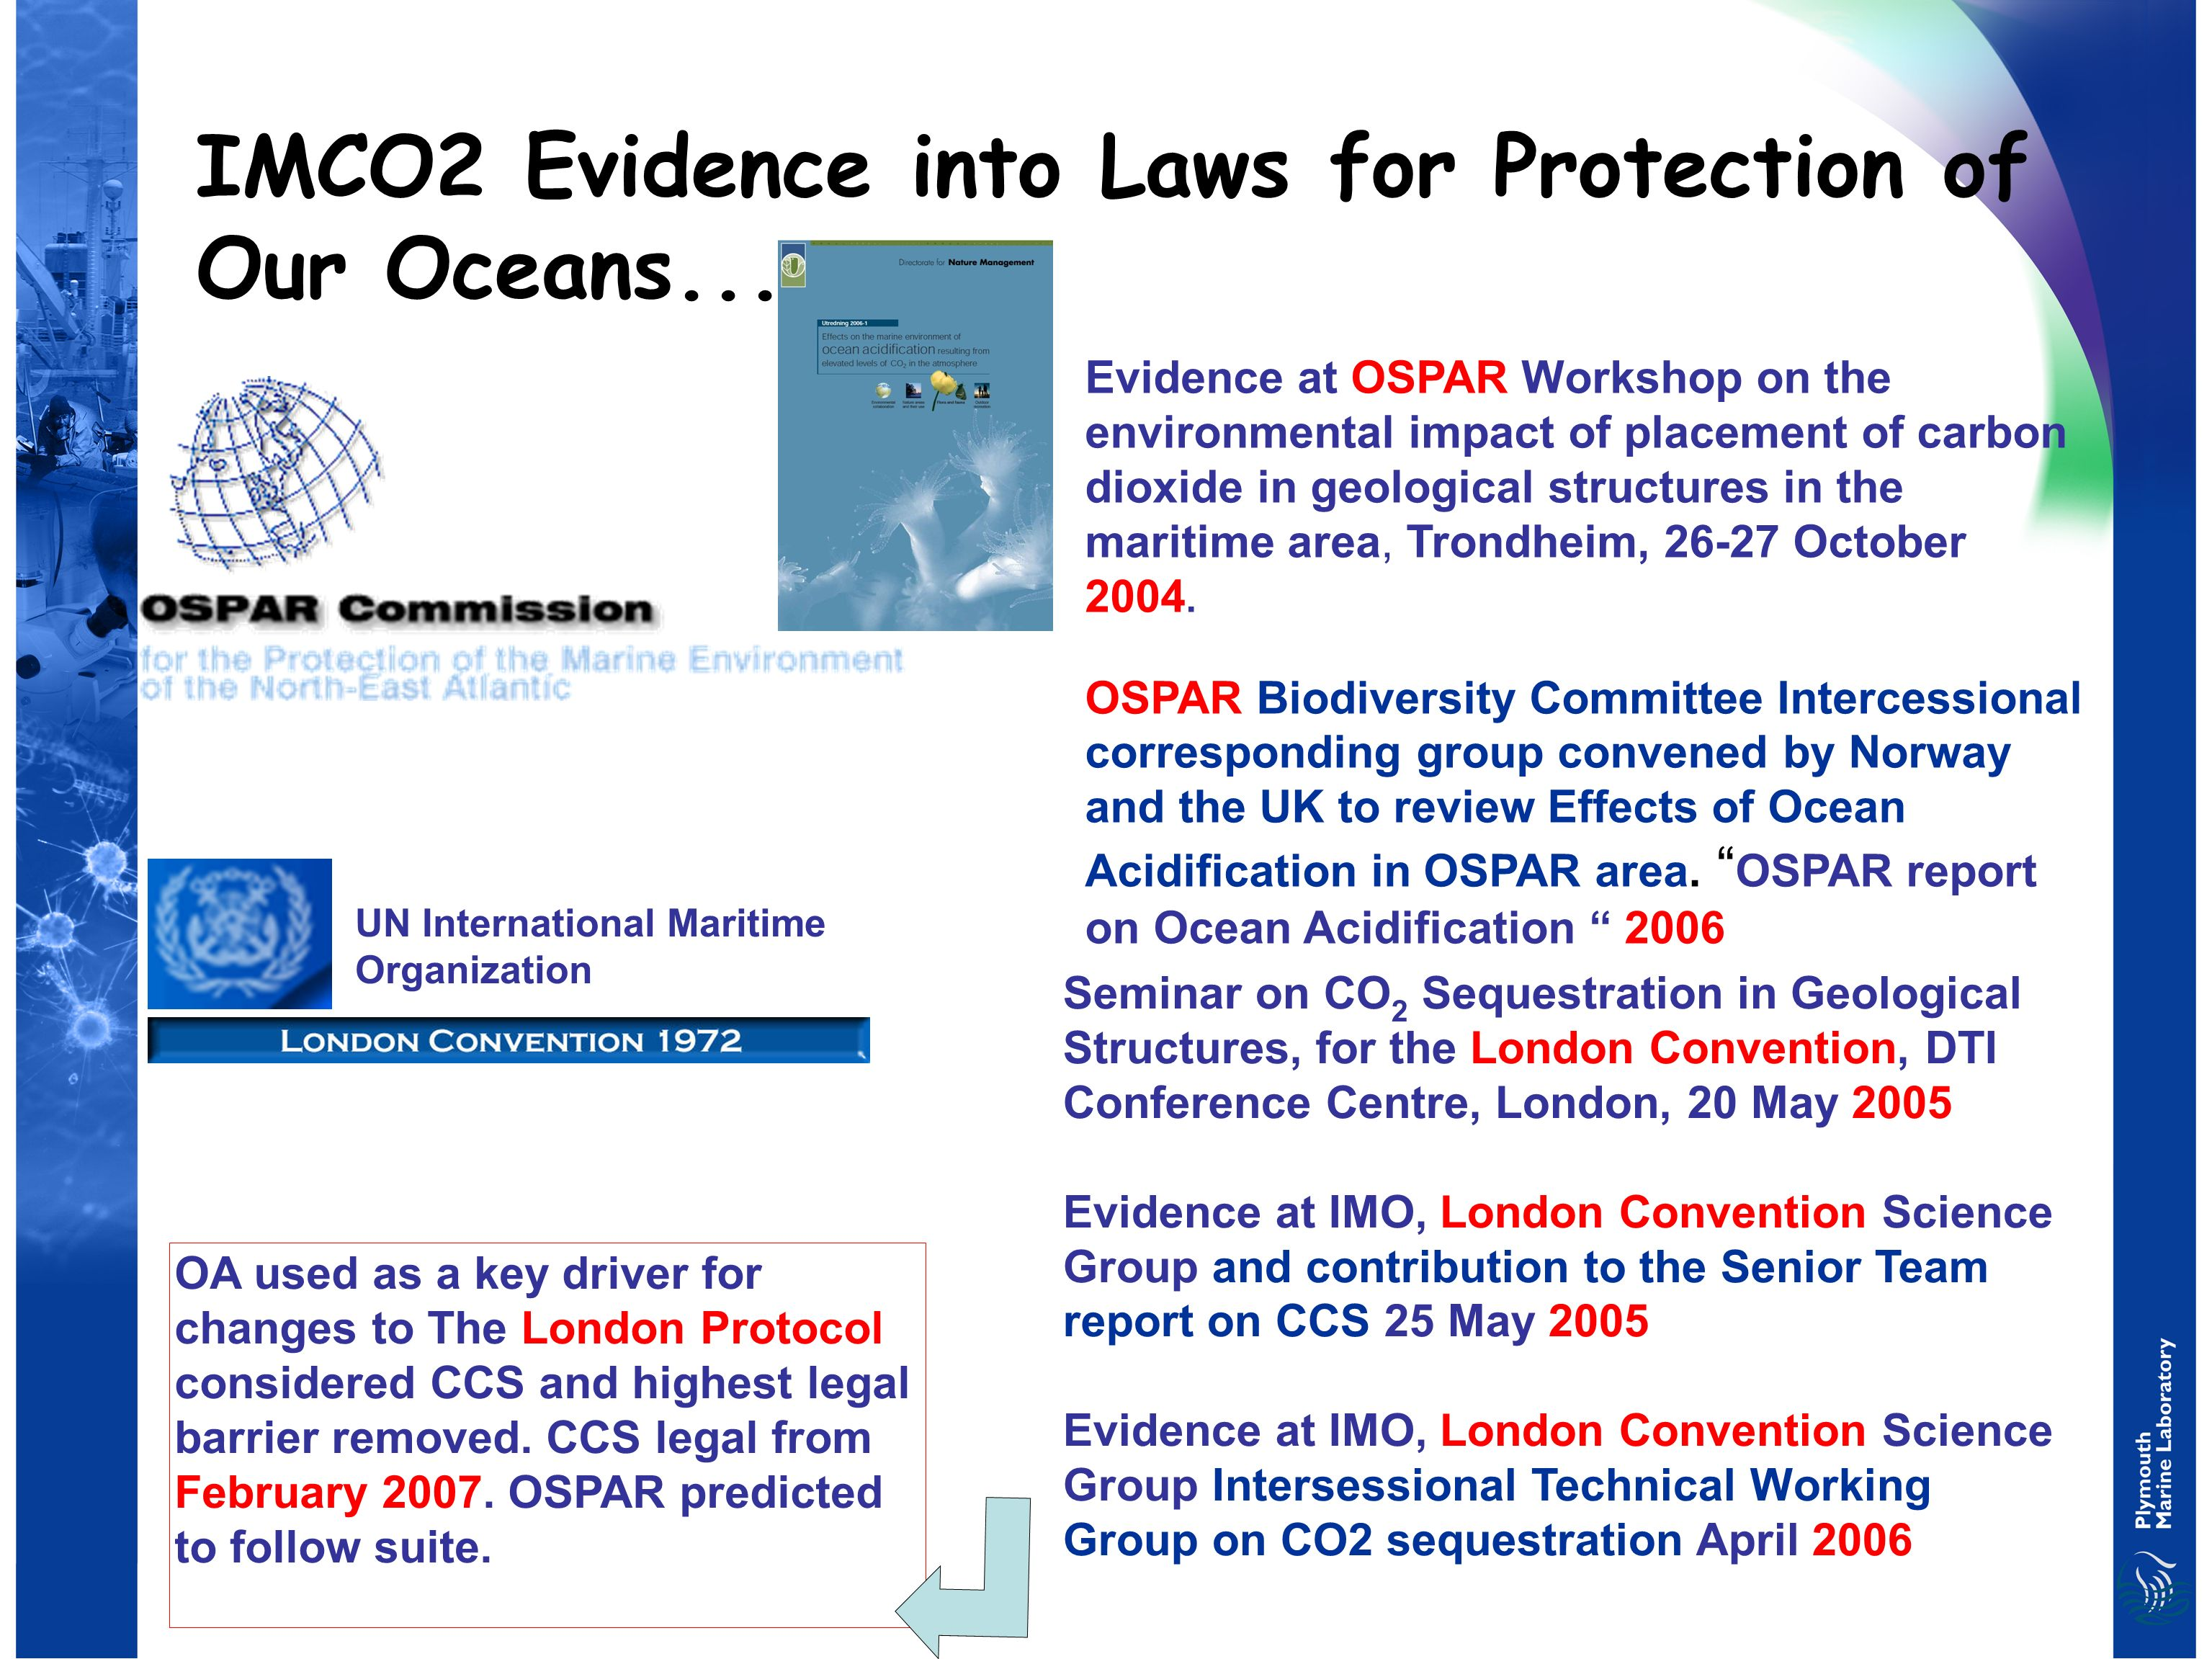 IMCO2 Evidence into Laws for Protection of Our Oceans.....